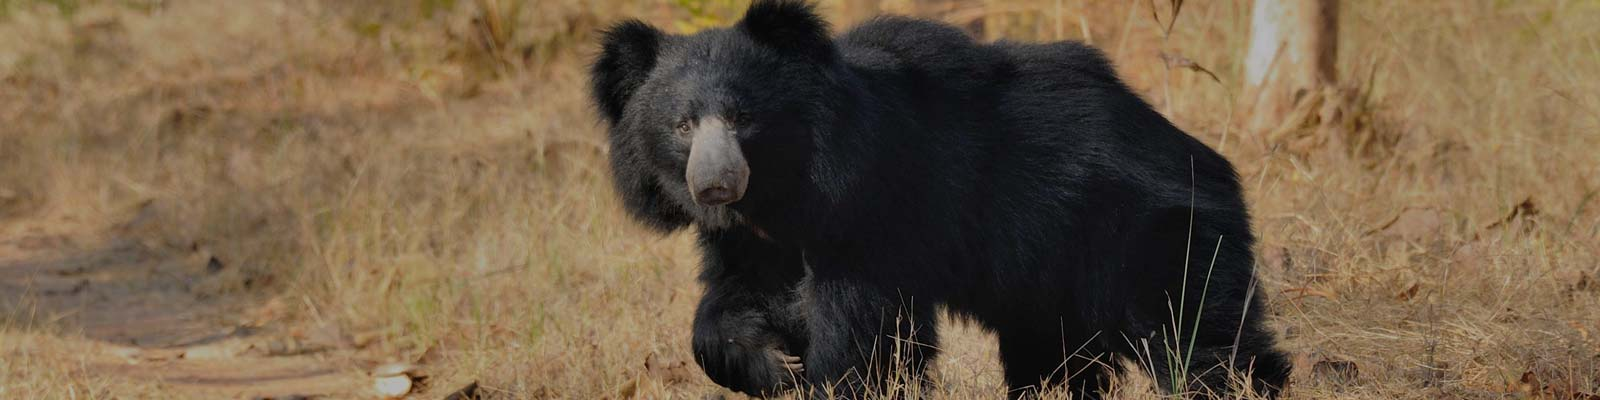 Bear in kanha national park